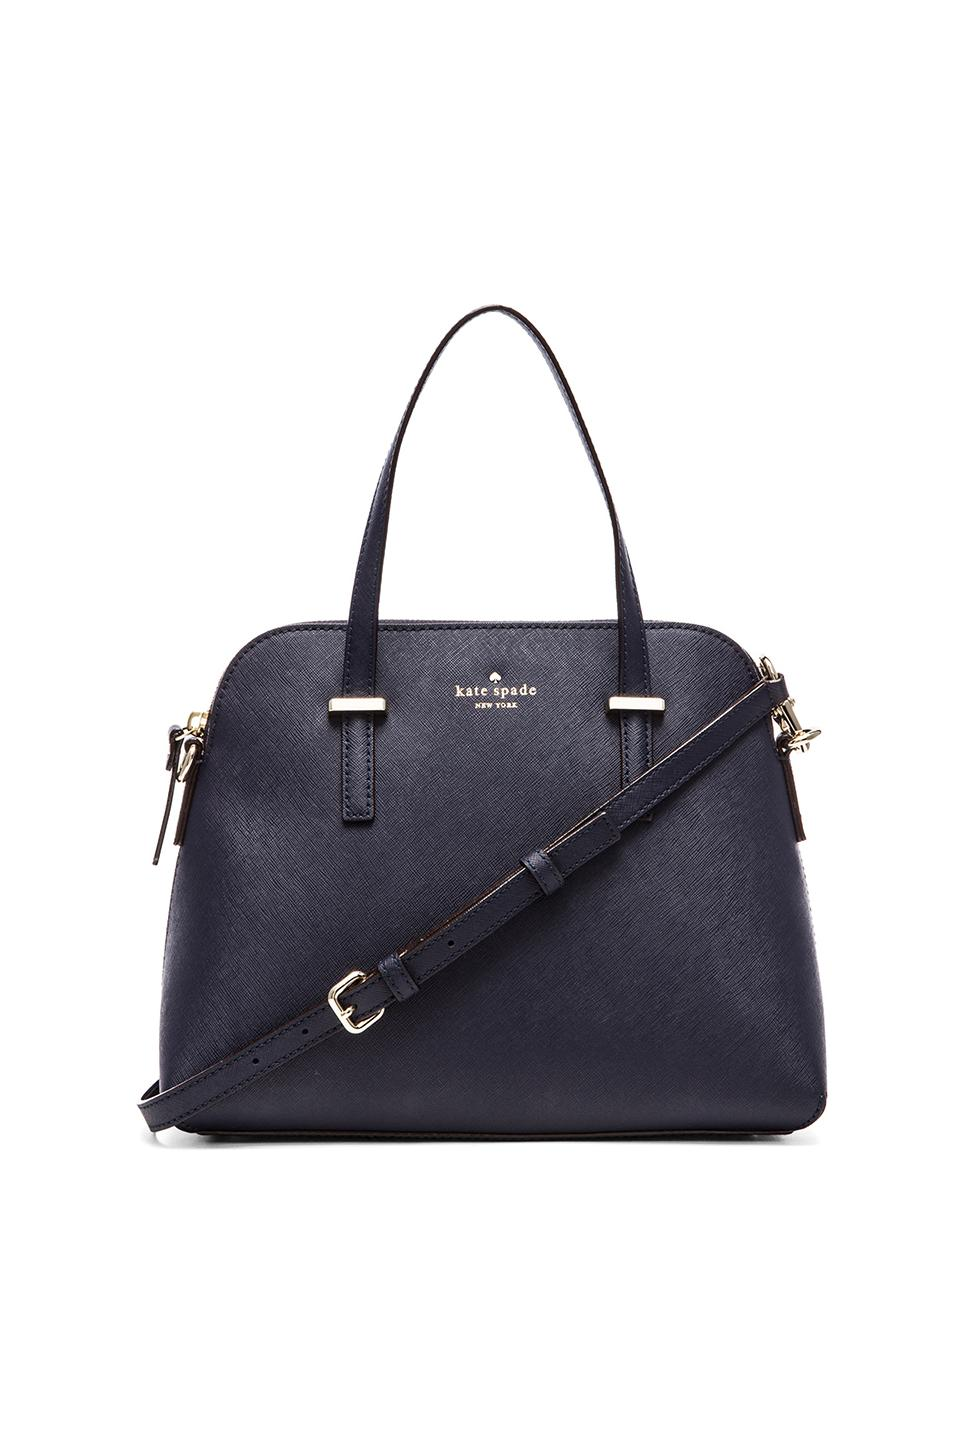 kate spade new york Maise Satchel in Off Shore